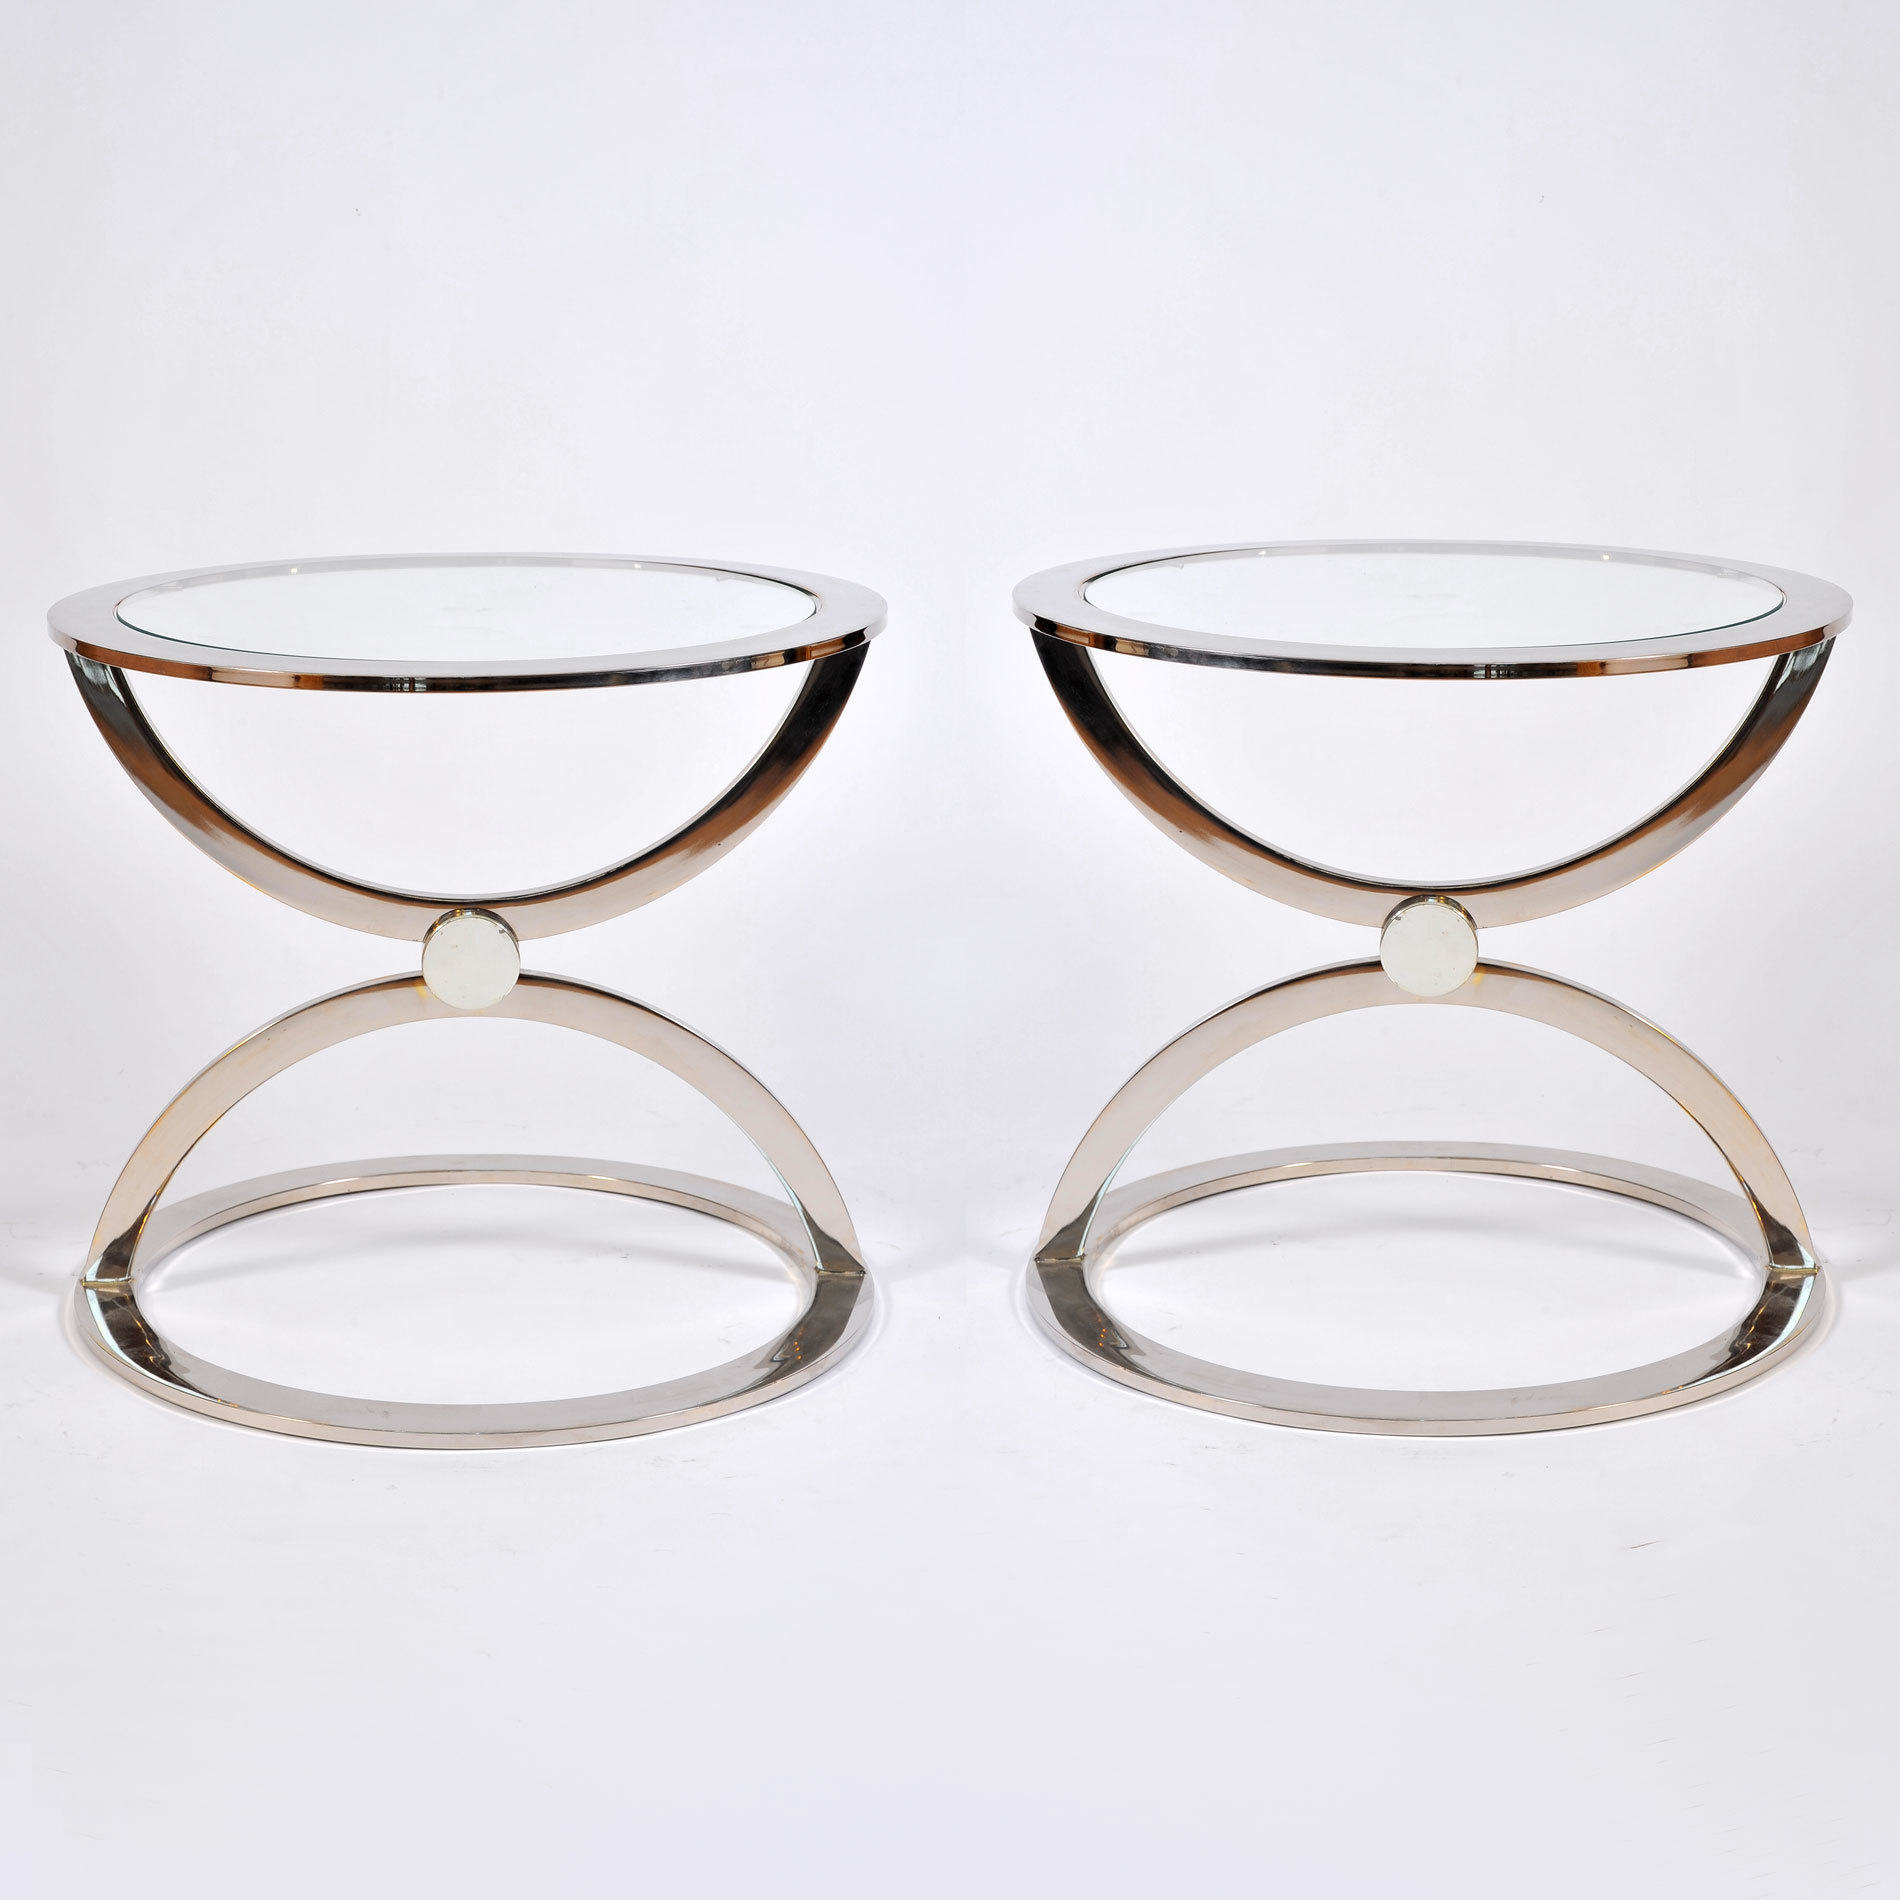 The image for Pair Us Chrome Circular Sidetables 01